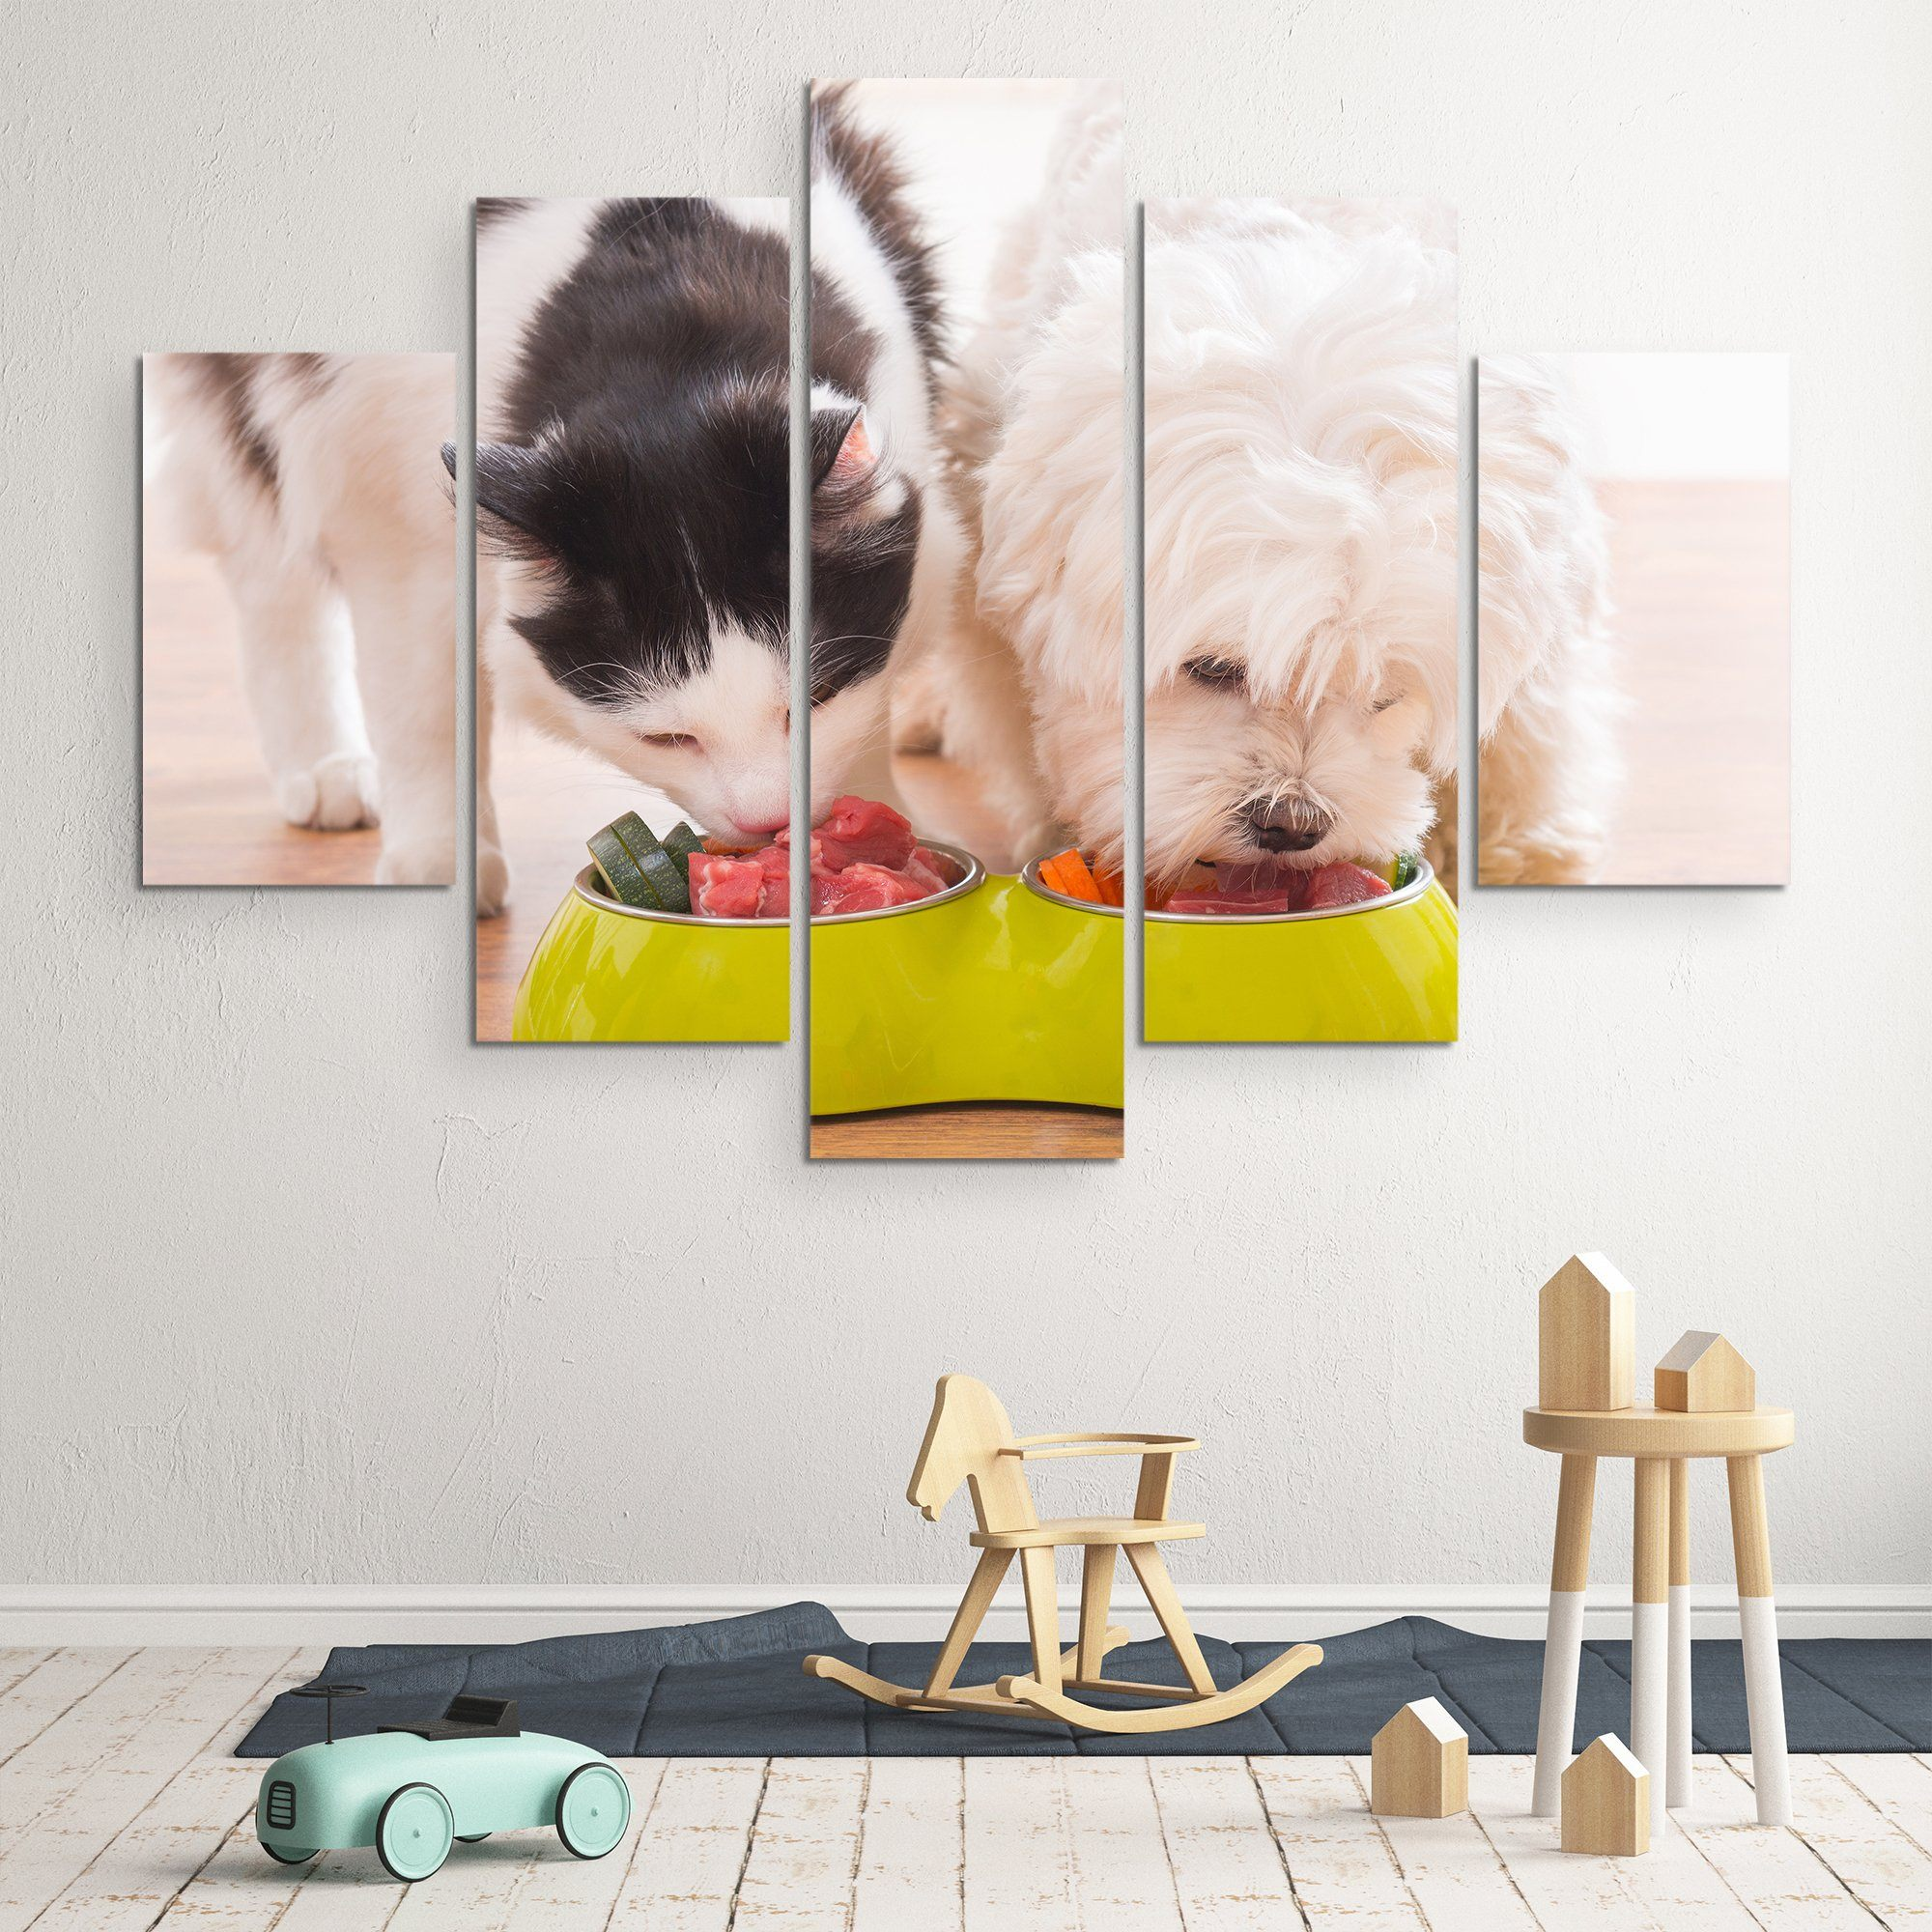 Eating Together wall art